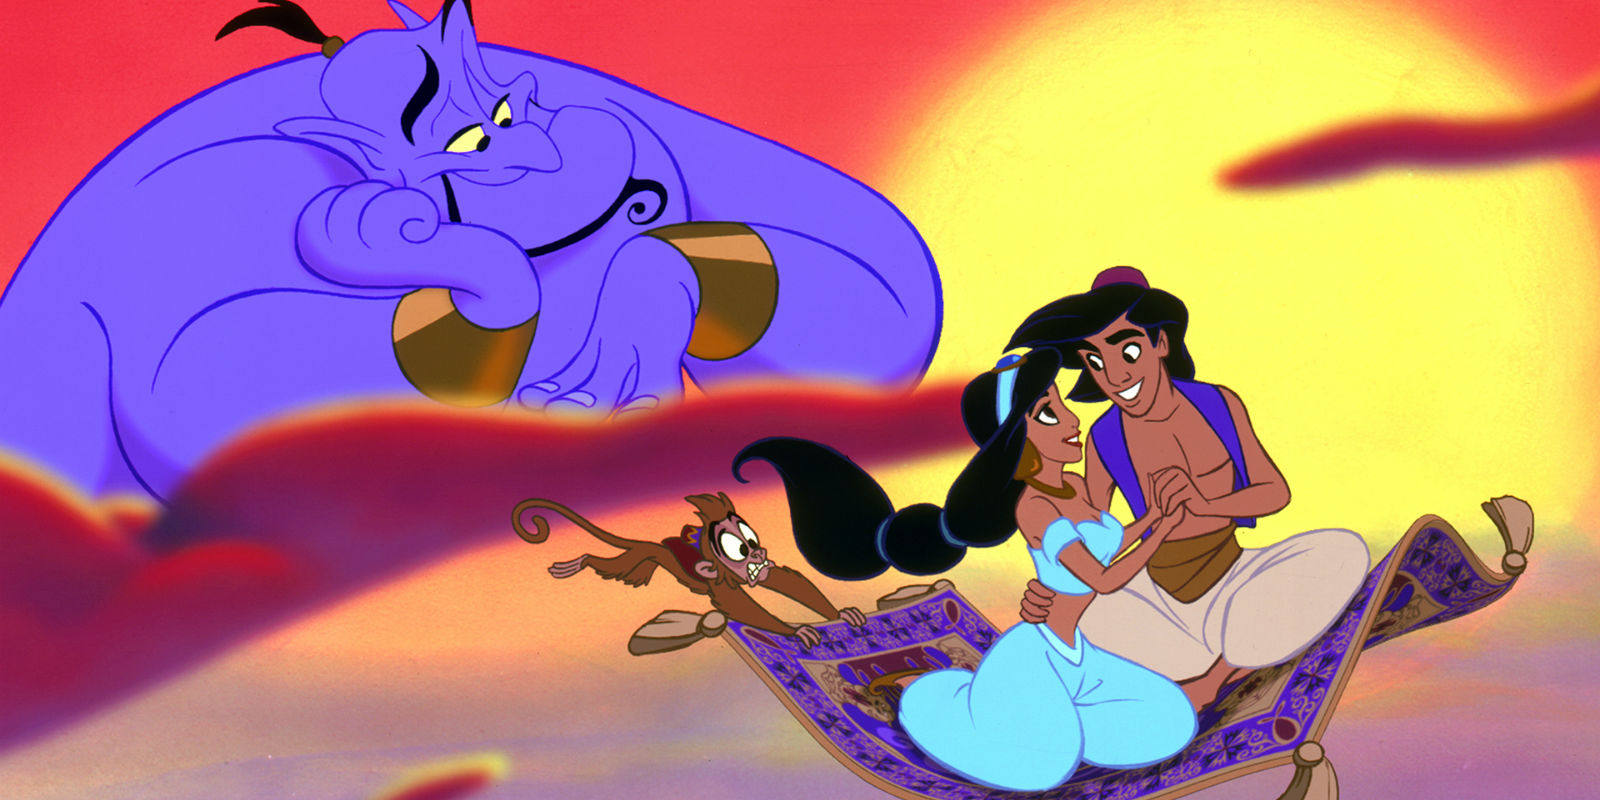 Aladdin Jasmine and Genie